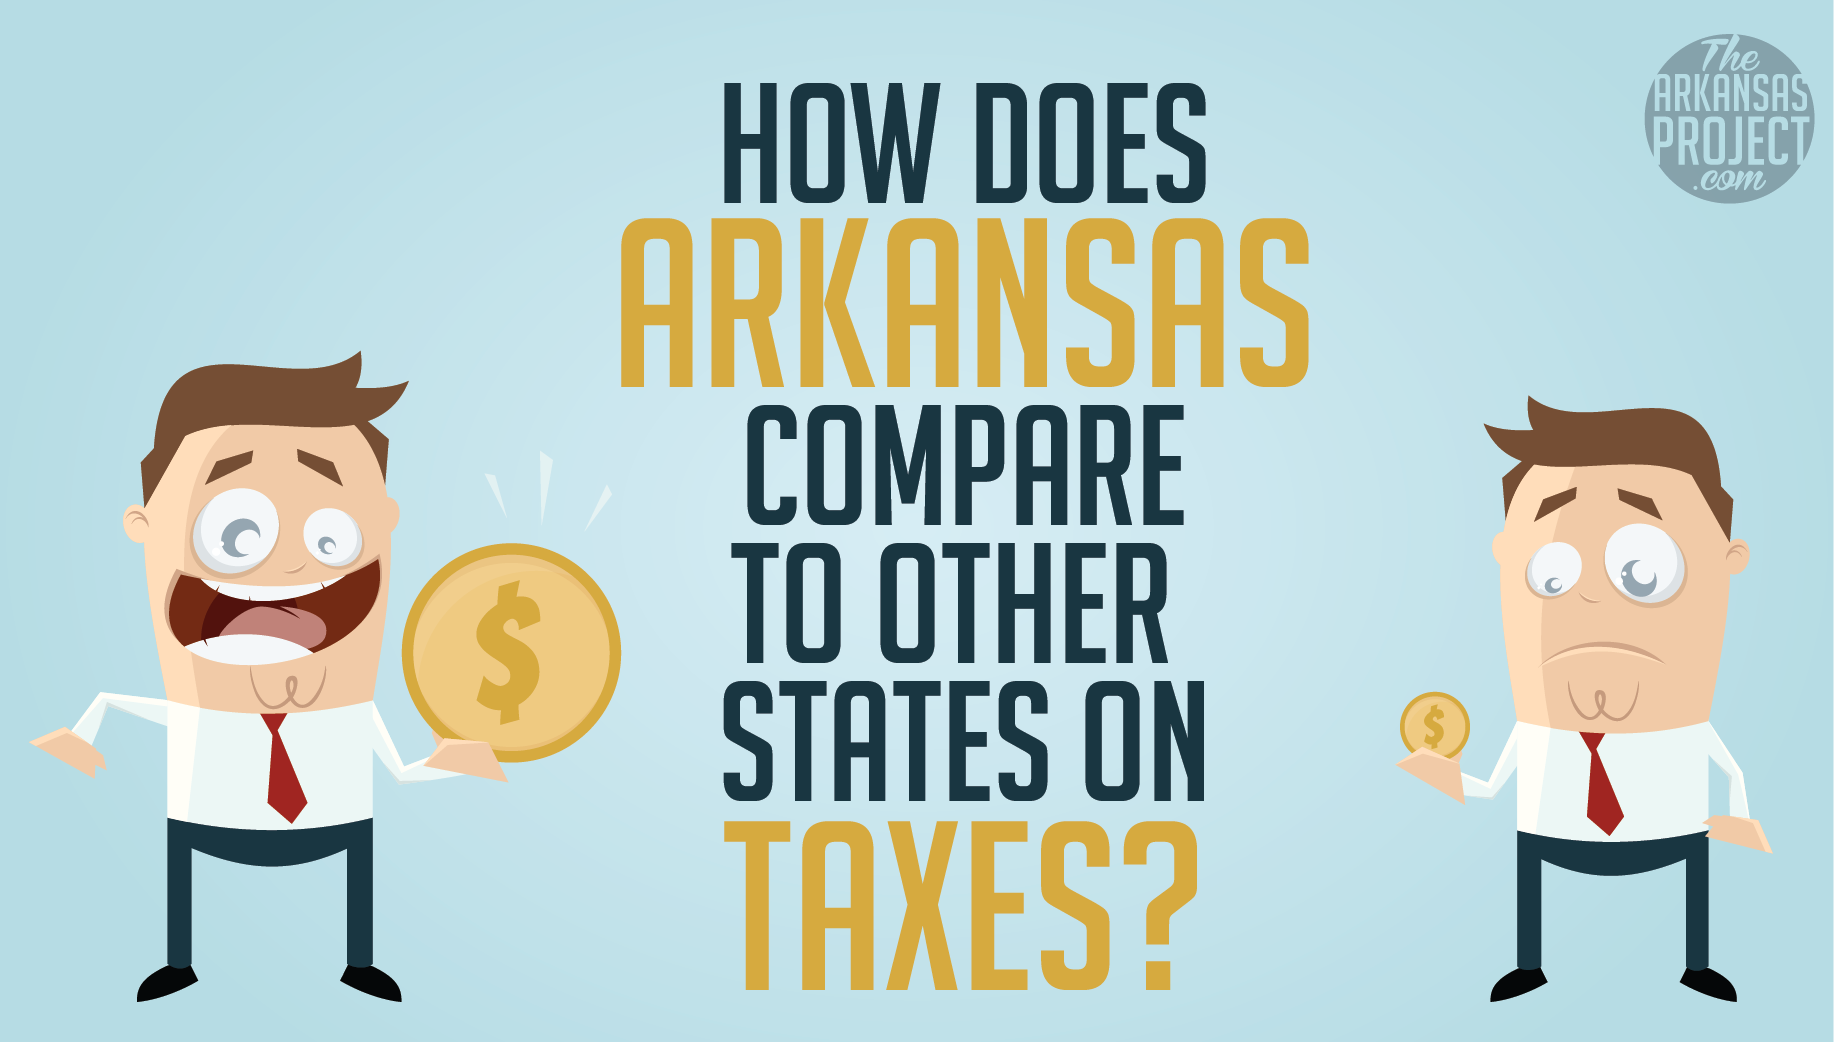 How Does Arkansas Compare To Other States On Taxes?   The Arkansas Project